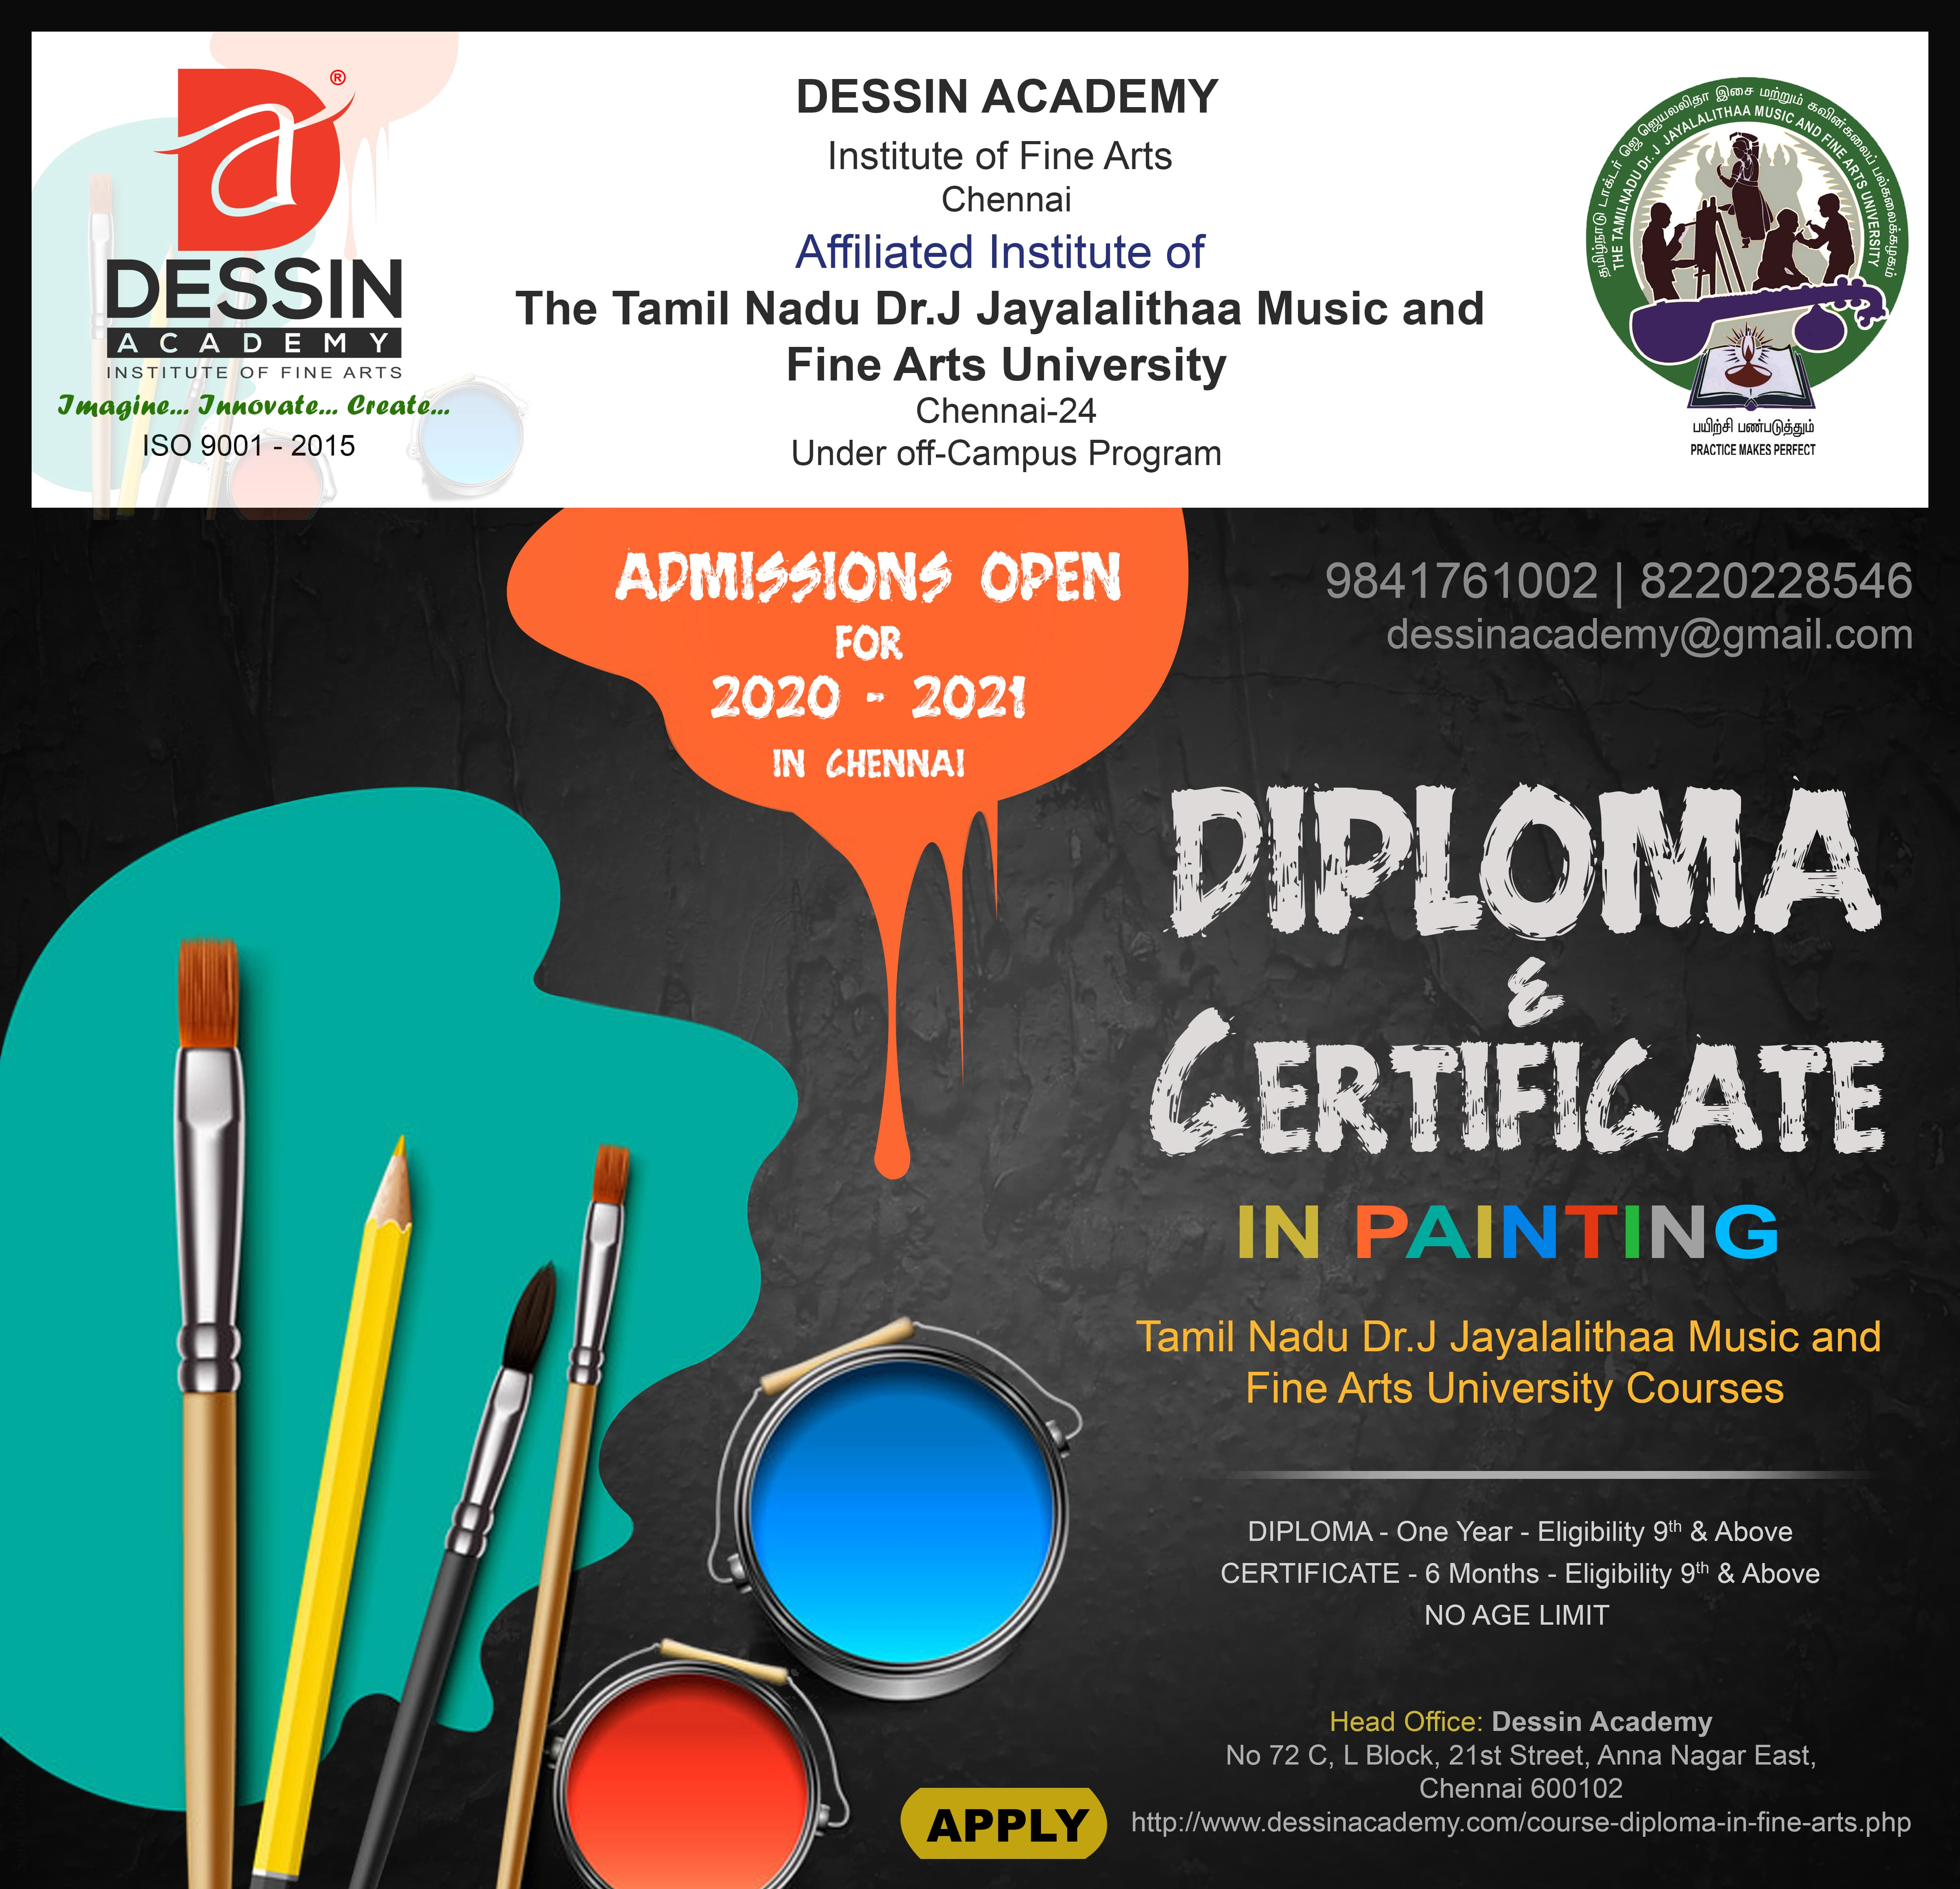 Dessin Academy Diploma In Painting Diploma In Fine Arts Painting Diploma In Fine Art For Adult Colouring Intermediate Course For Kids Drawing And Painting Classes In Chennai Art Classes In Chennai Drawing Classes